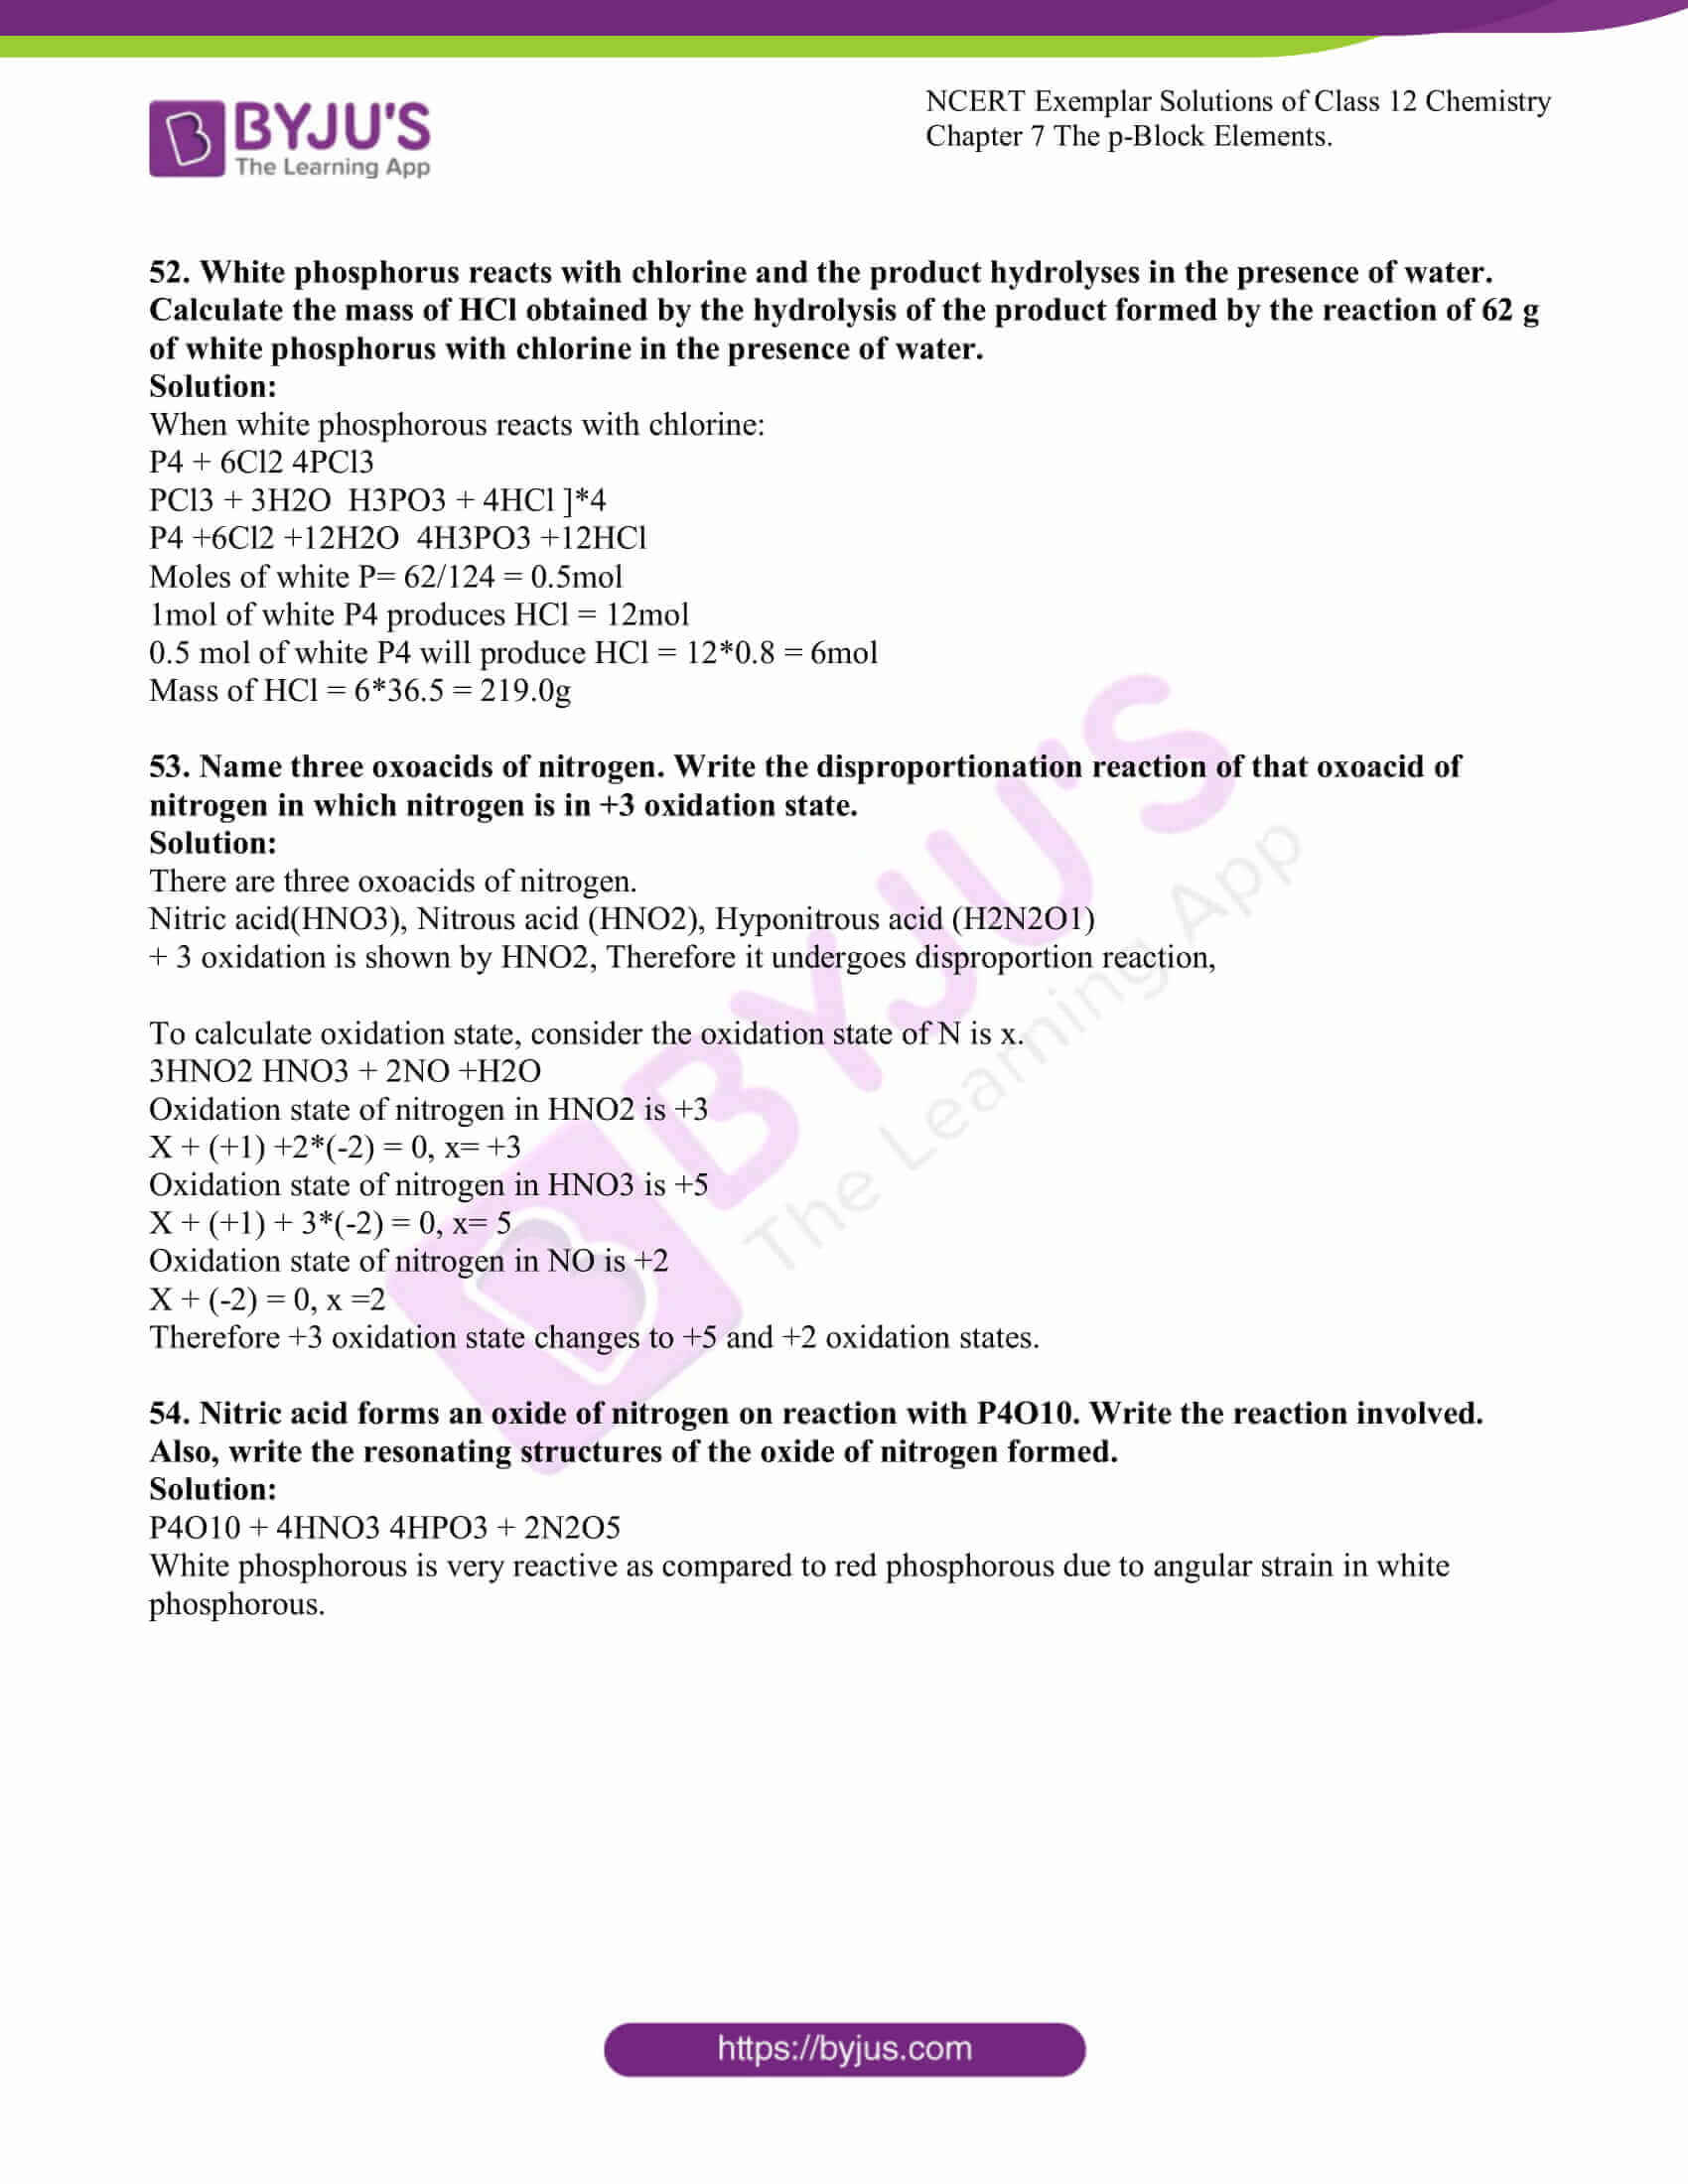 ncert exemplar solutions for class 12 chemistry chapter 7 pBlock 11